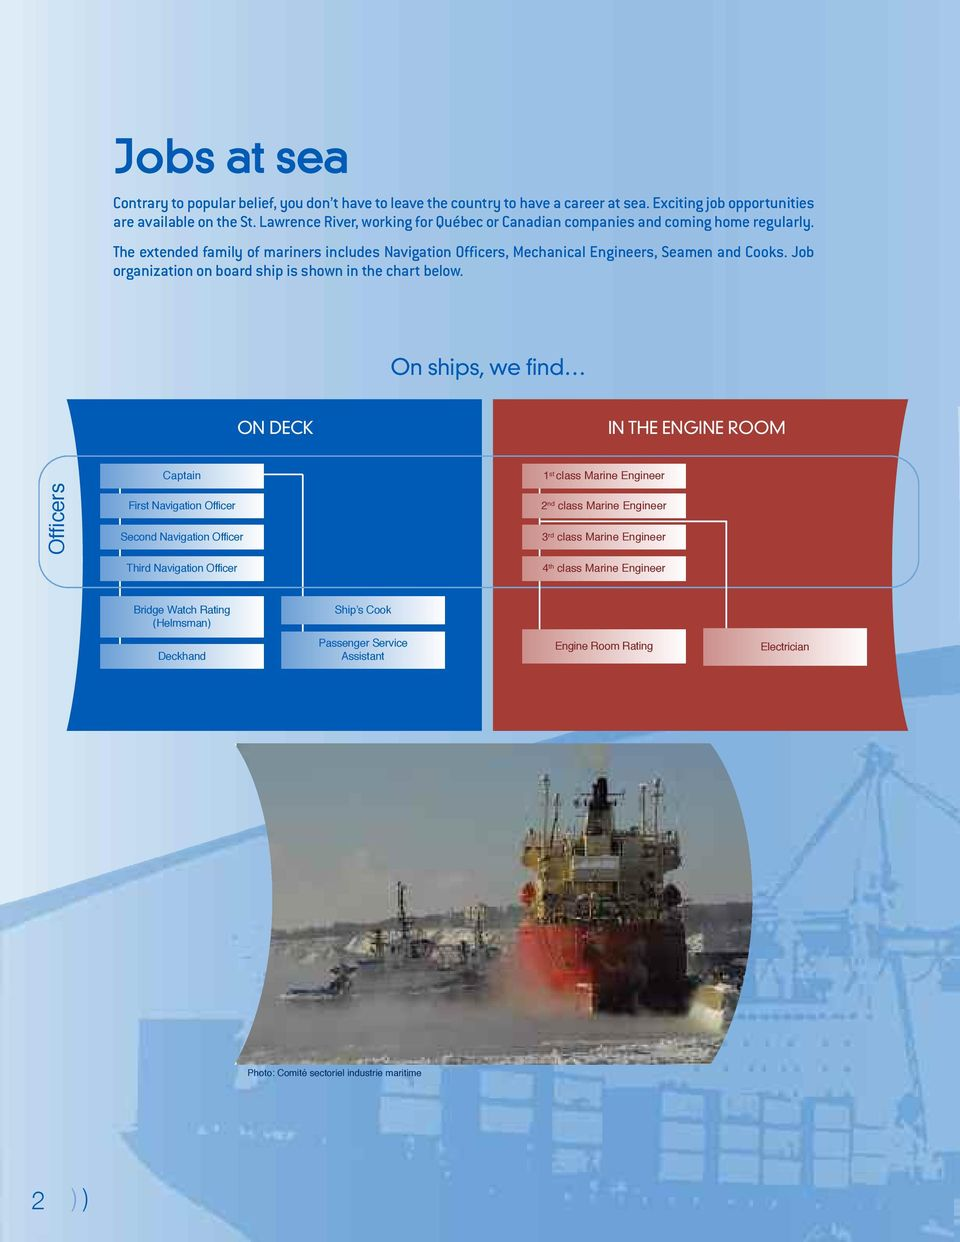 Job organization on board ship is shown in the chart below.